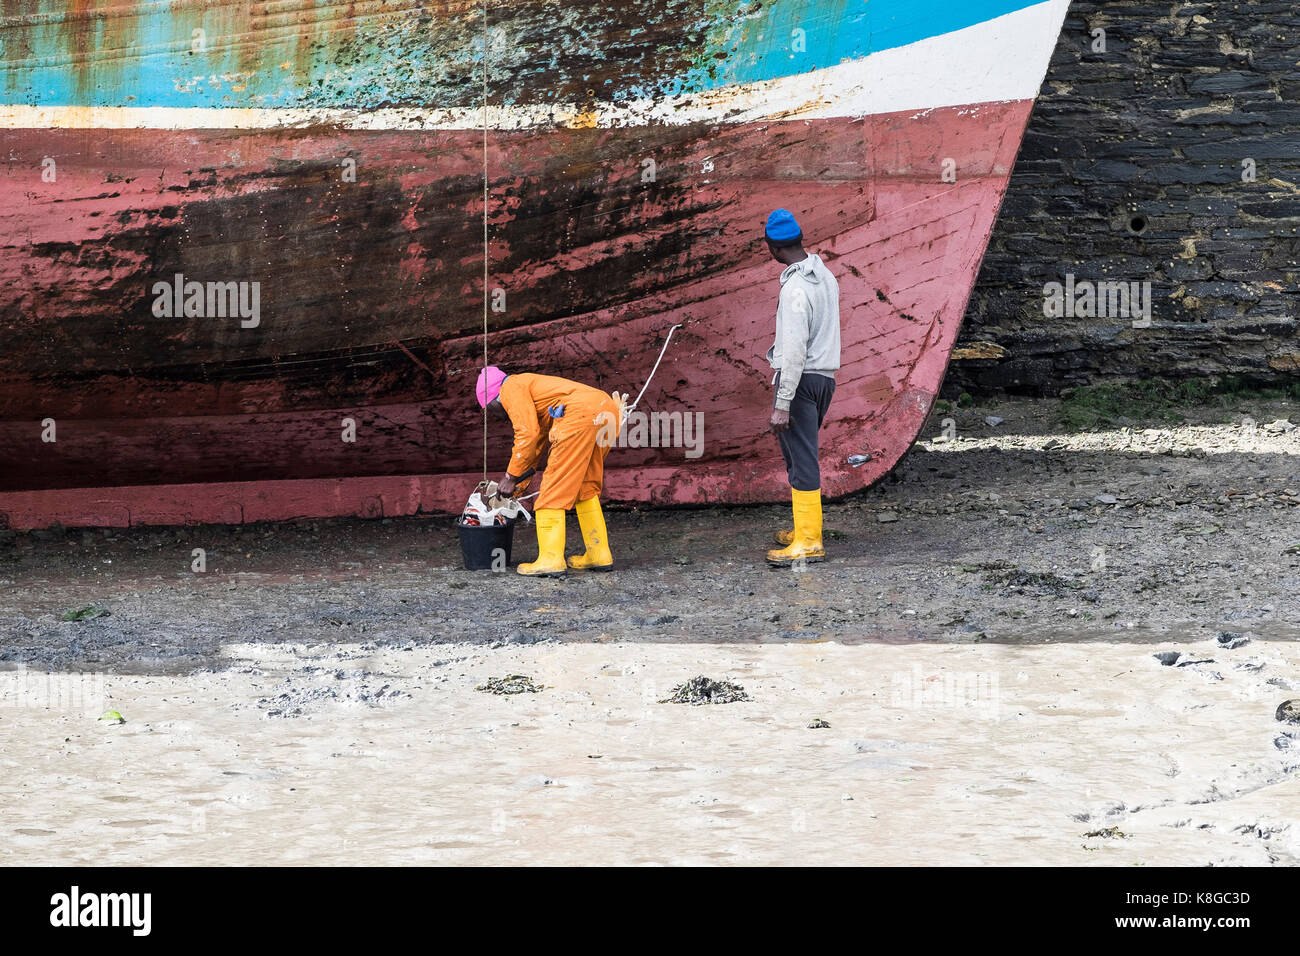 Ship repair - the hull of a fishing trawler being repaired in Padstow Harbour on the North Cornwall coast. - Stock Image